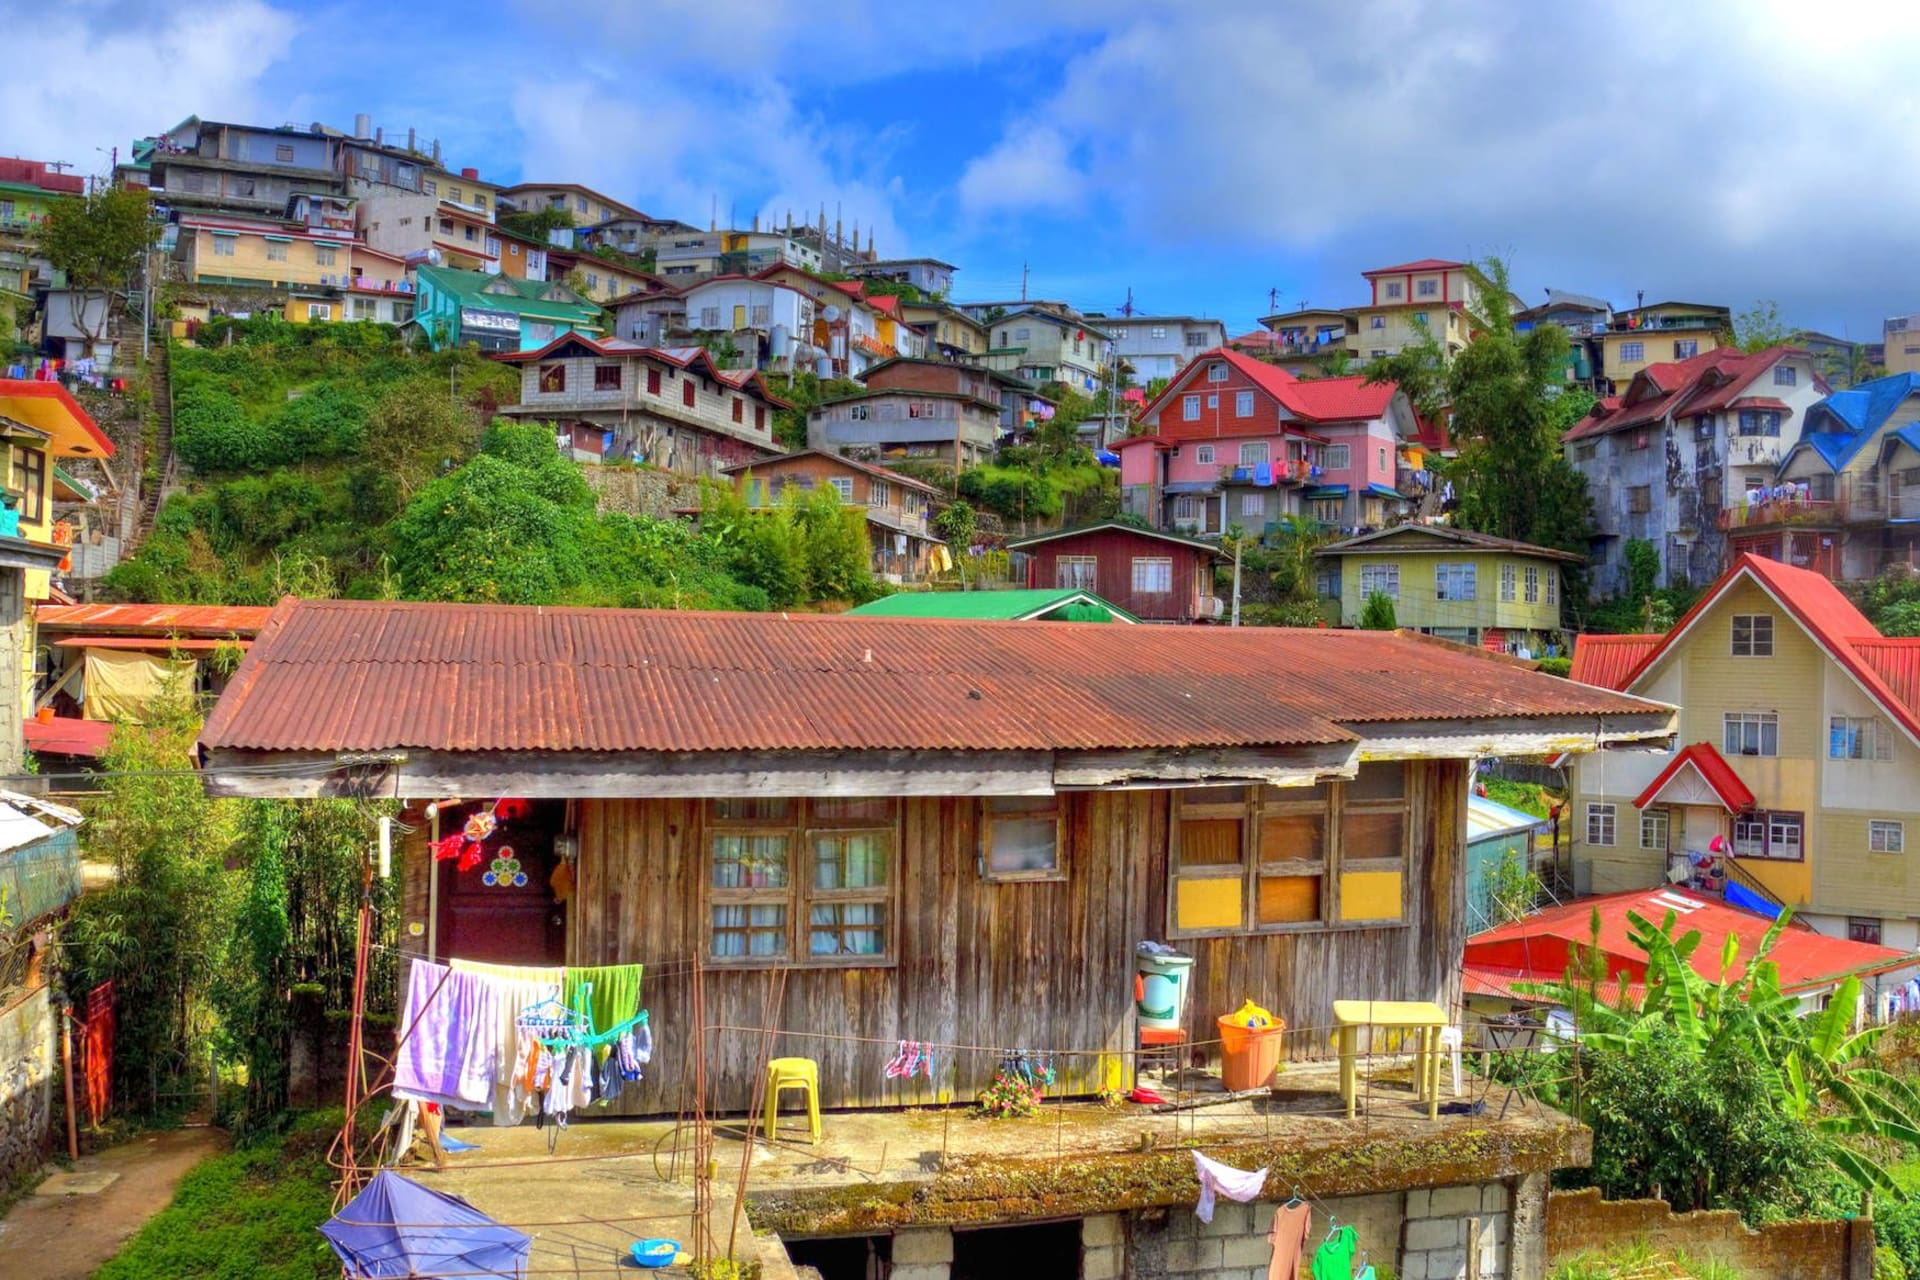 Luzon Baguio colourful town